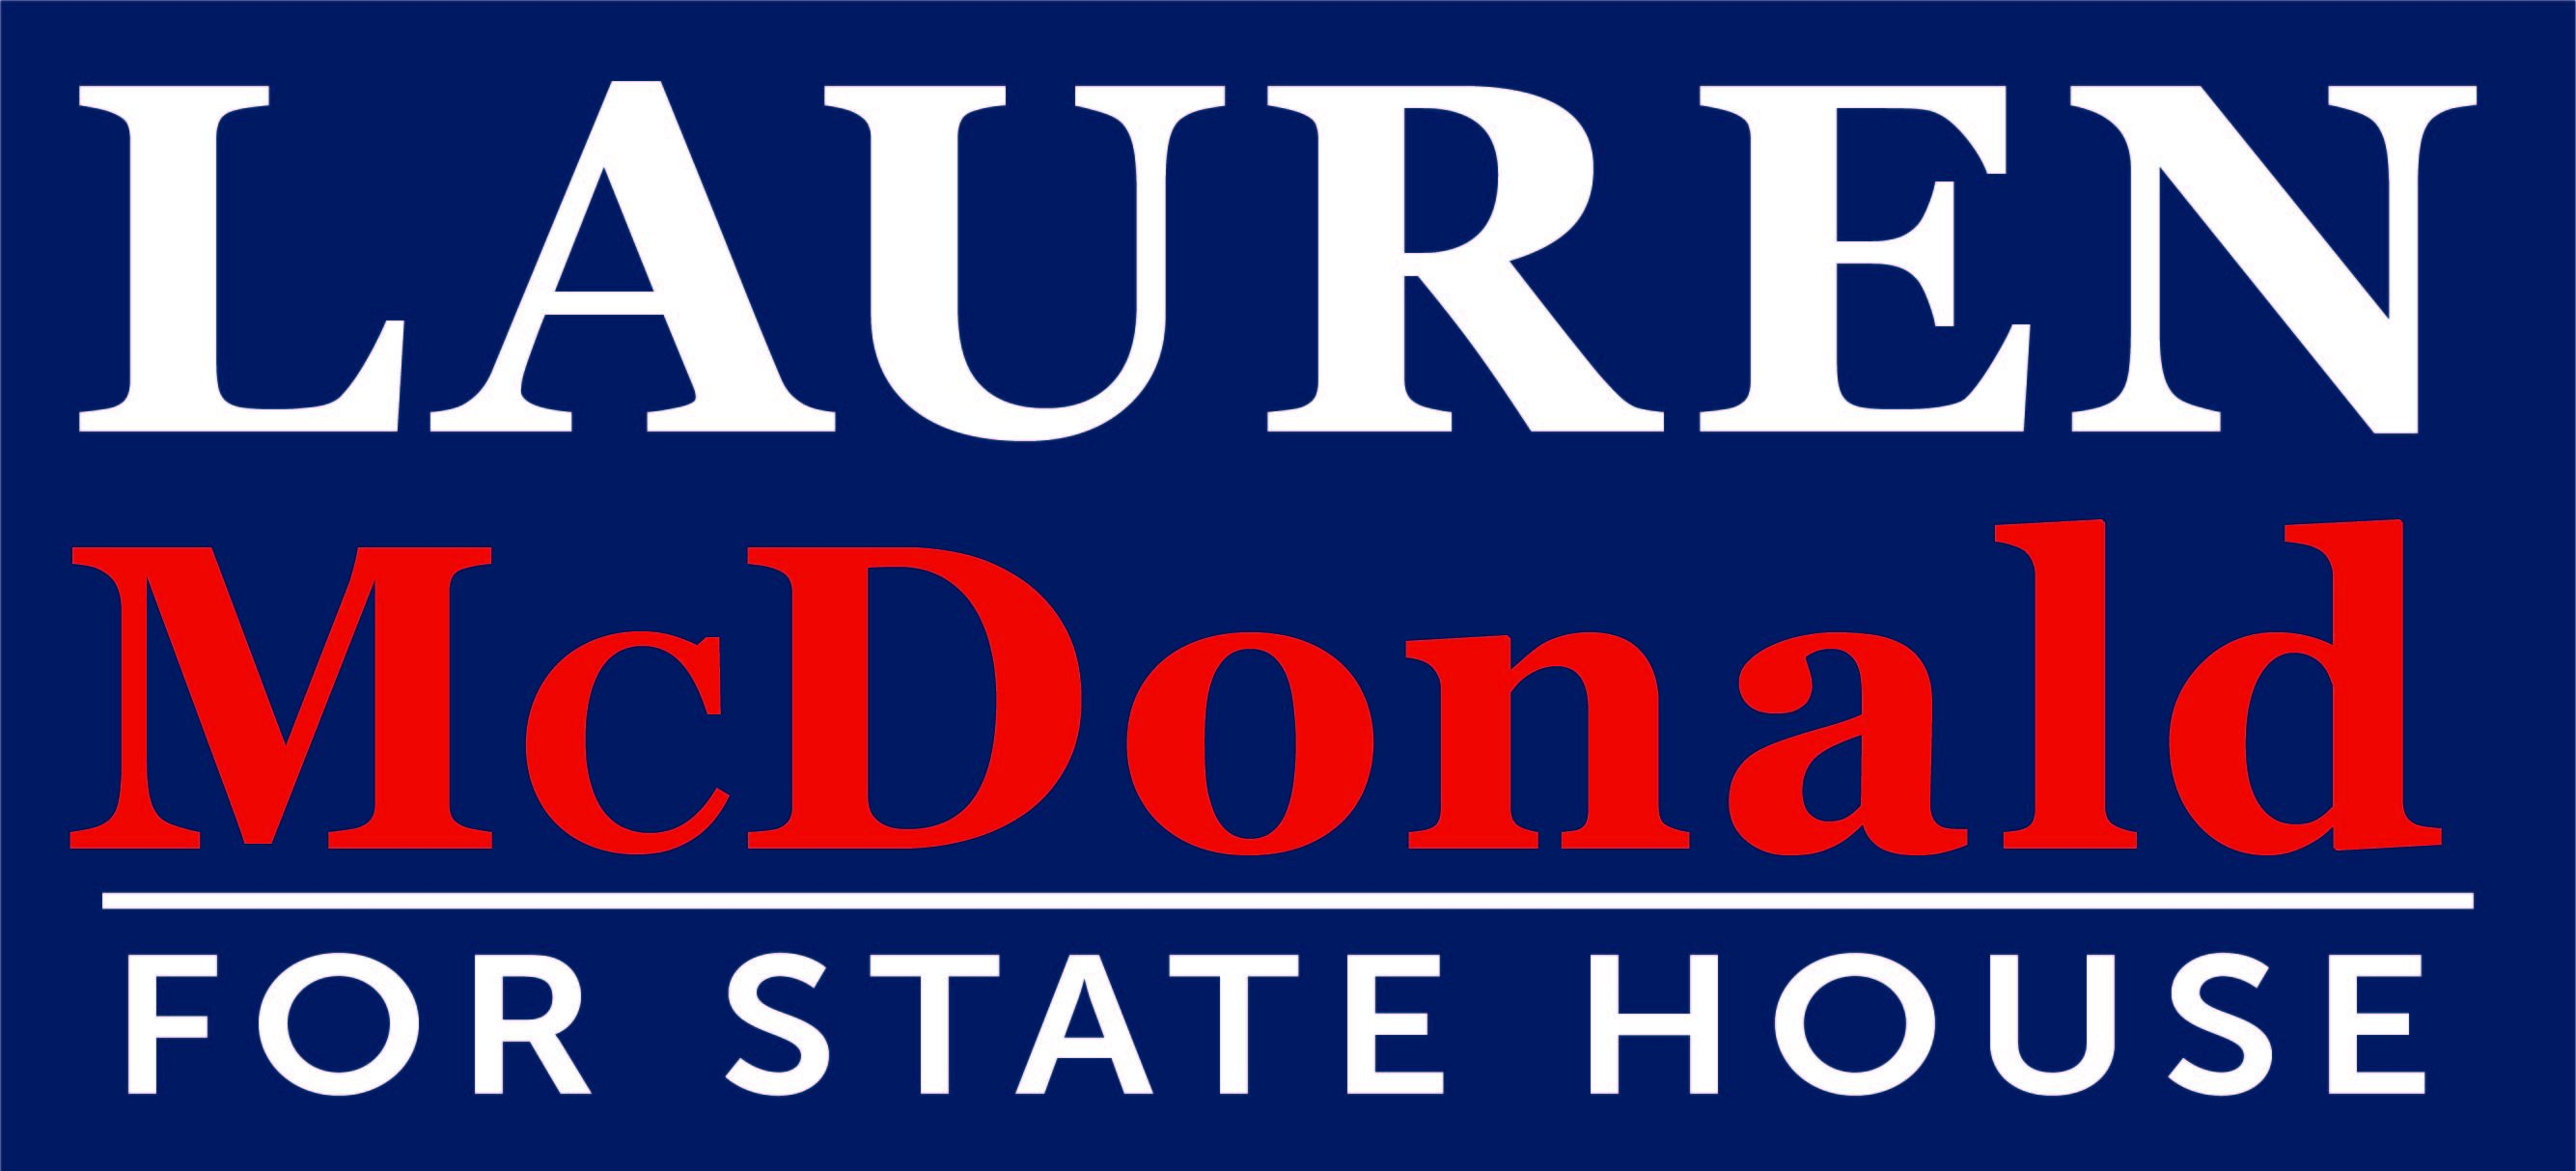 Vote Lauren McDonald